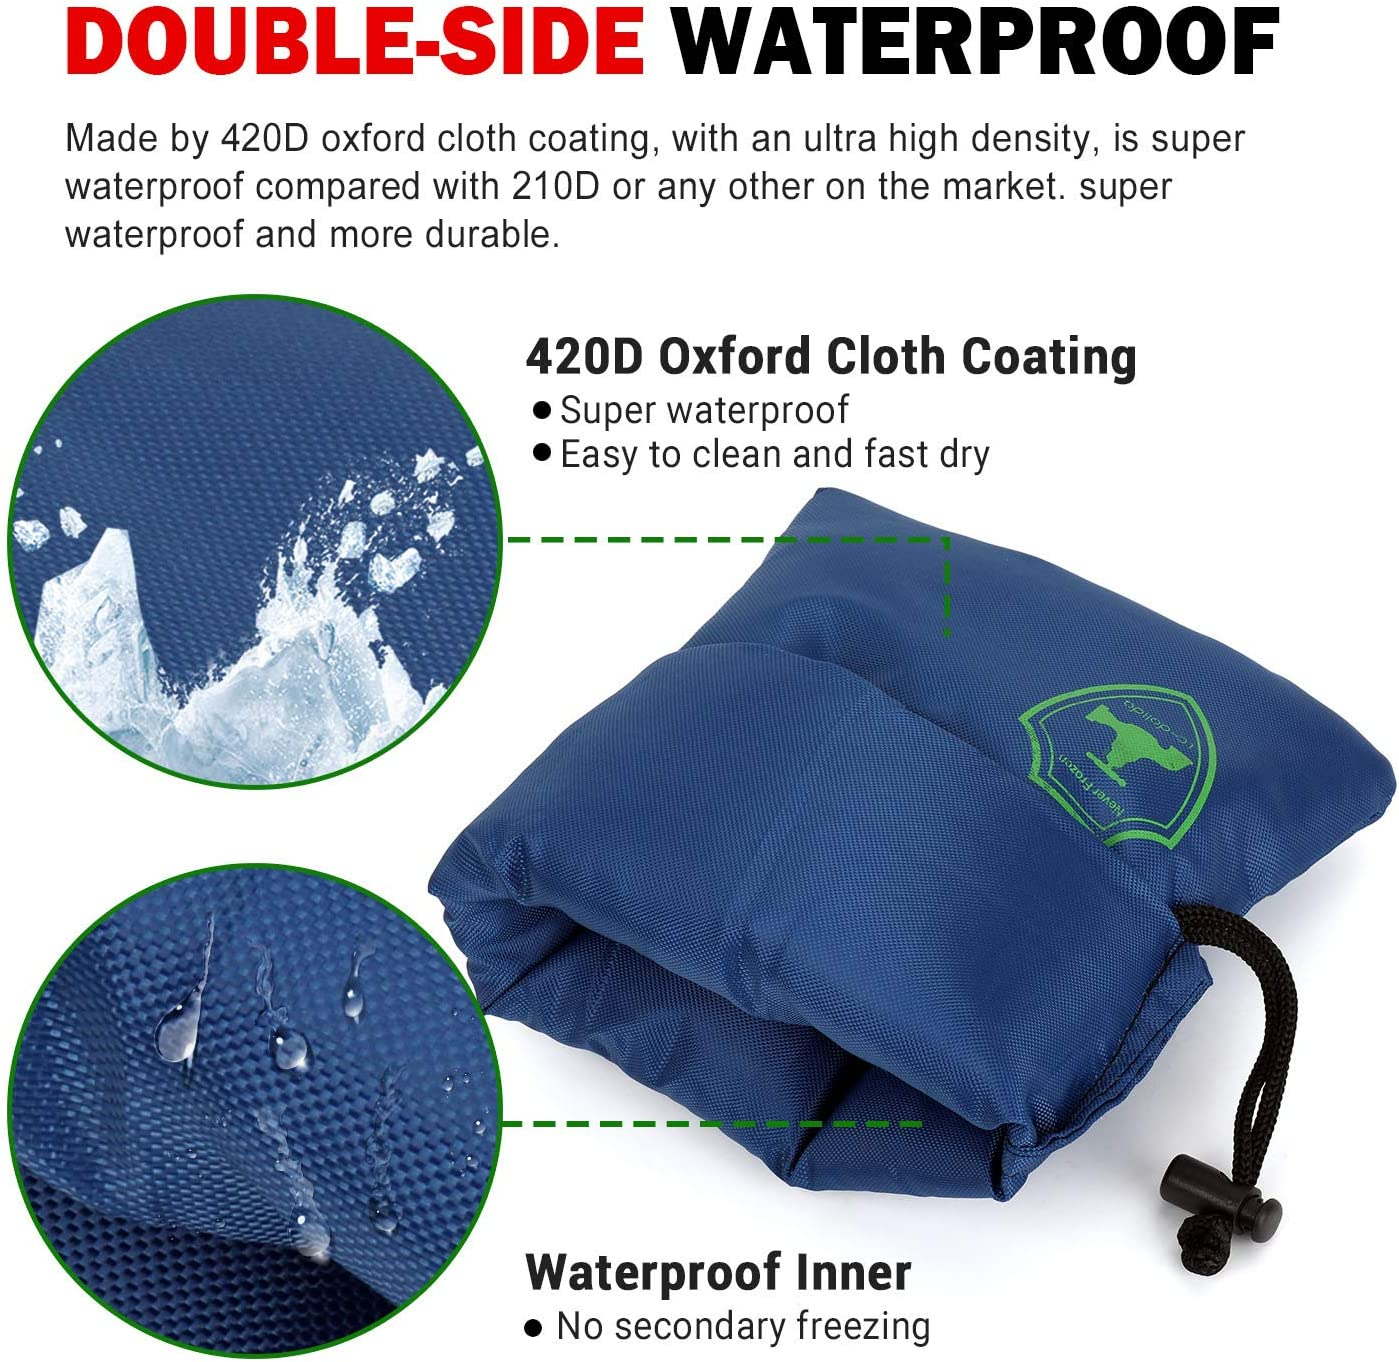 Outdoor Faucet Cover, 2-Pack Pro Super Insulate & Waterproof Unisize Outside Faucet Covering Socks for Winter Freeze Protection (Blue): Home Improvement